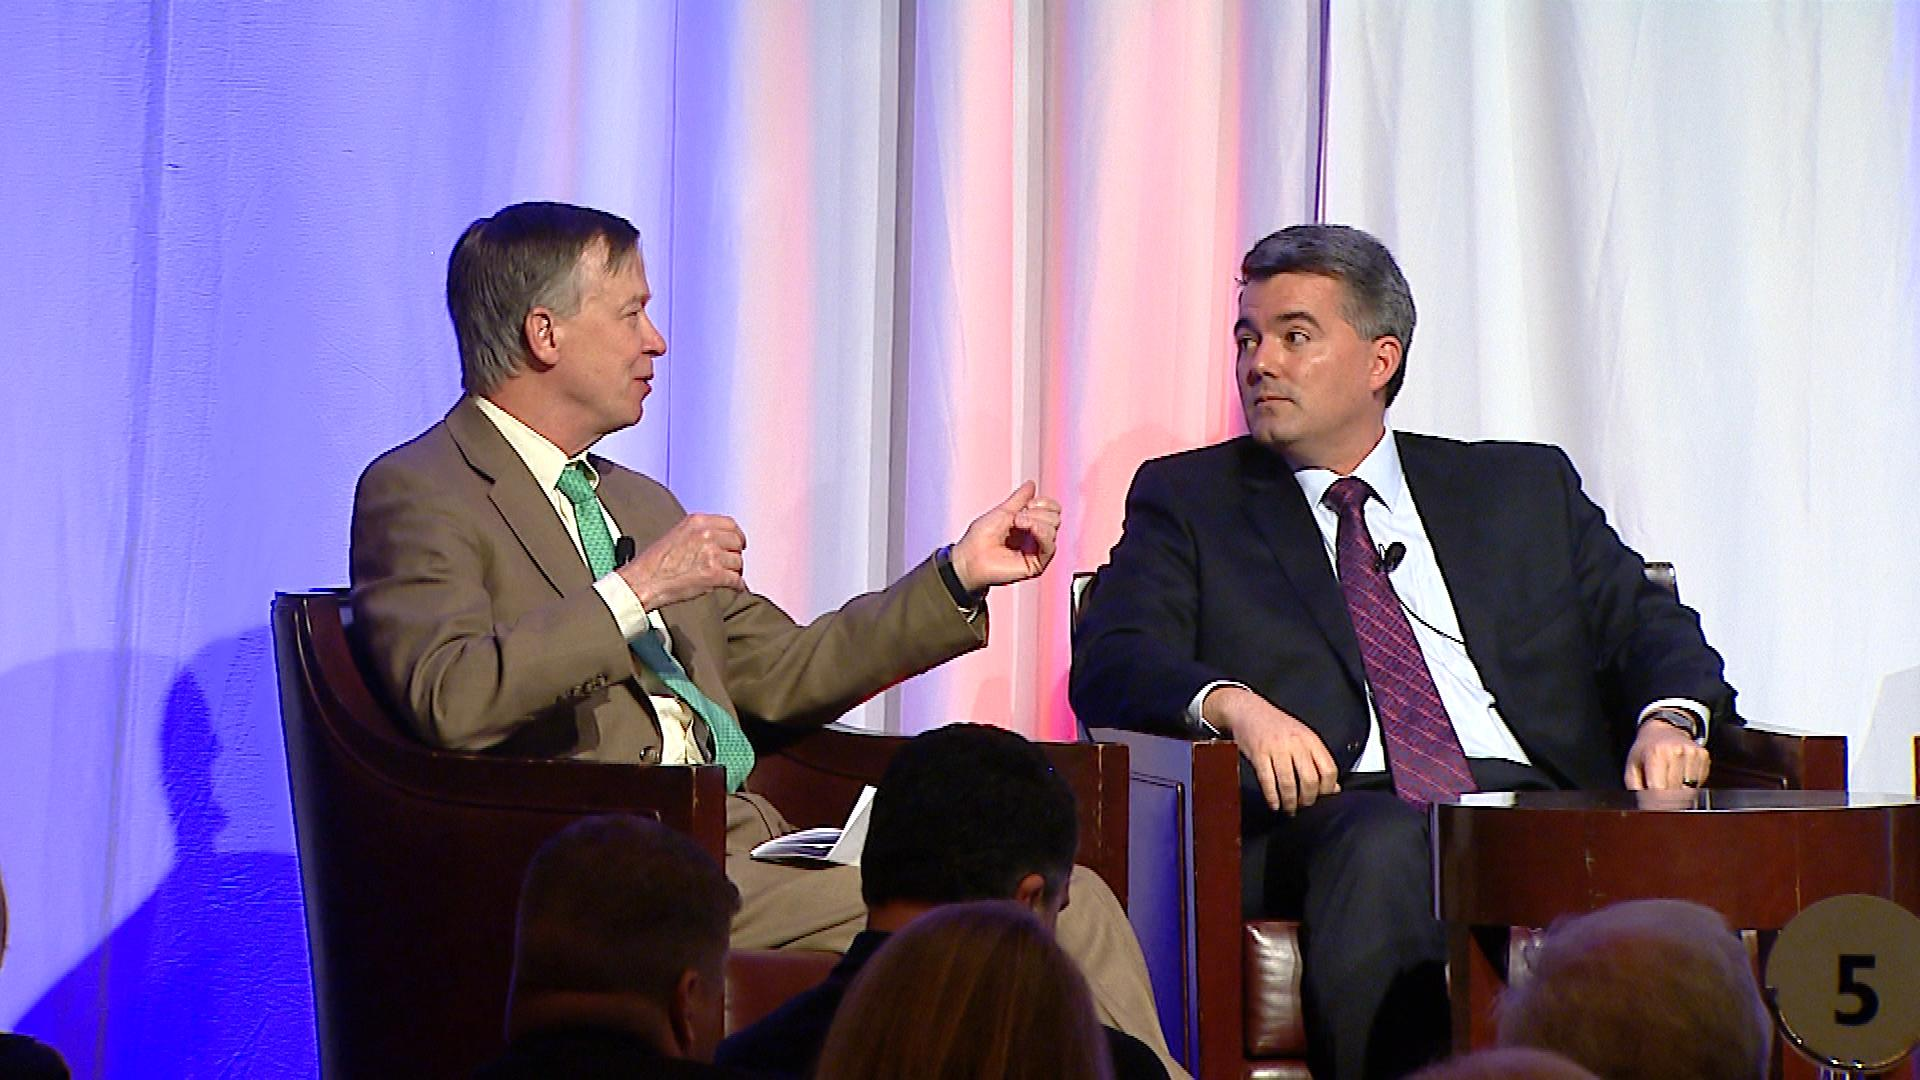 Gov. John Hickenlooper and U.S. Sen. Cory Gardner at the Vital for Colorado breakfast (credit: CBS)